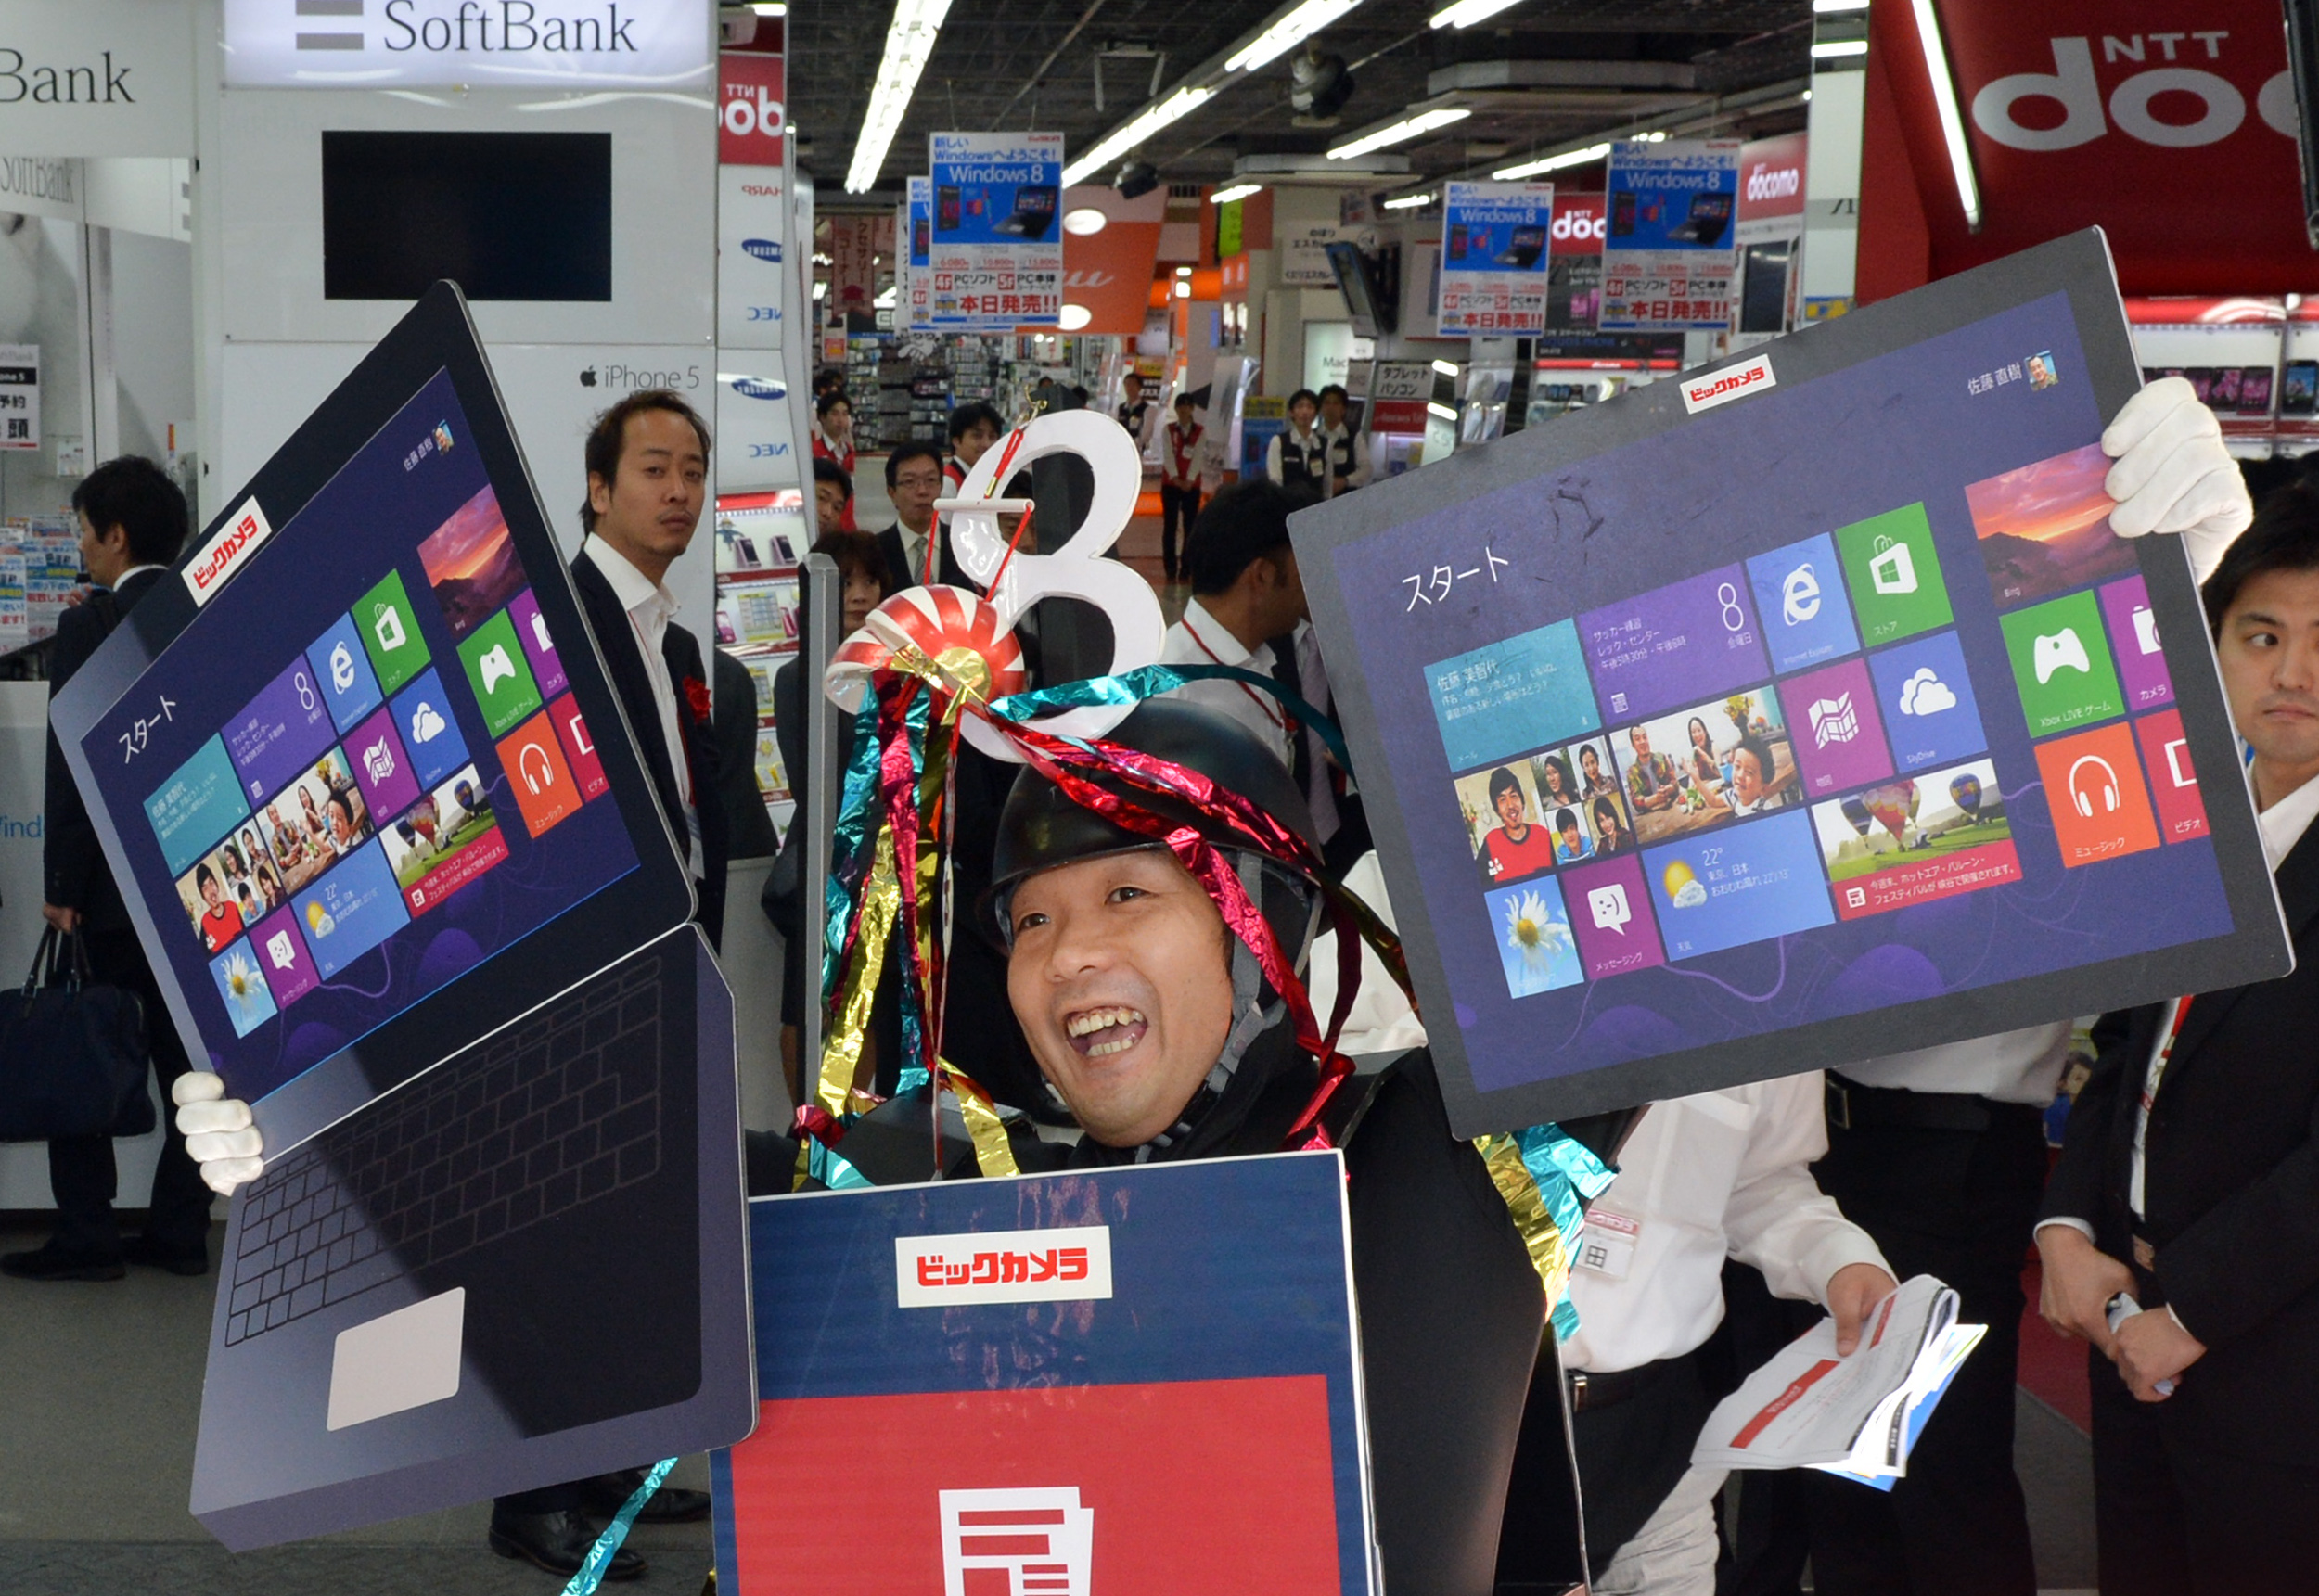 Windows 8 Sandwich-Board Man wishes you a happy launch day